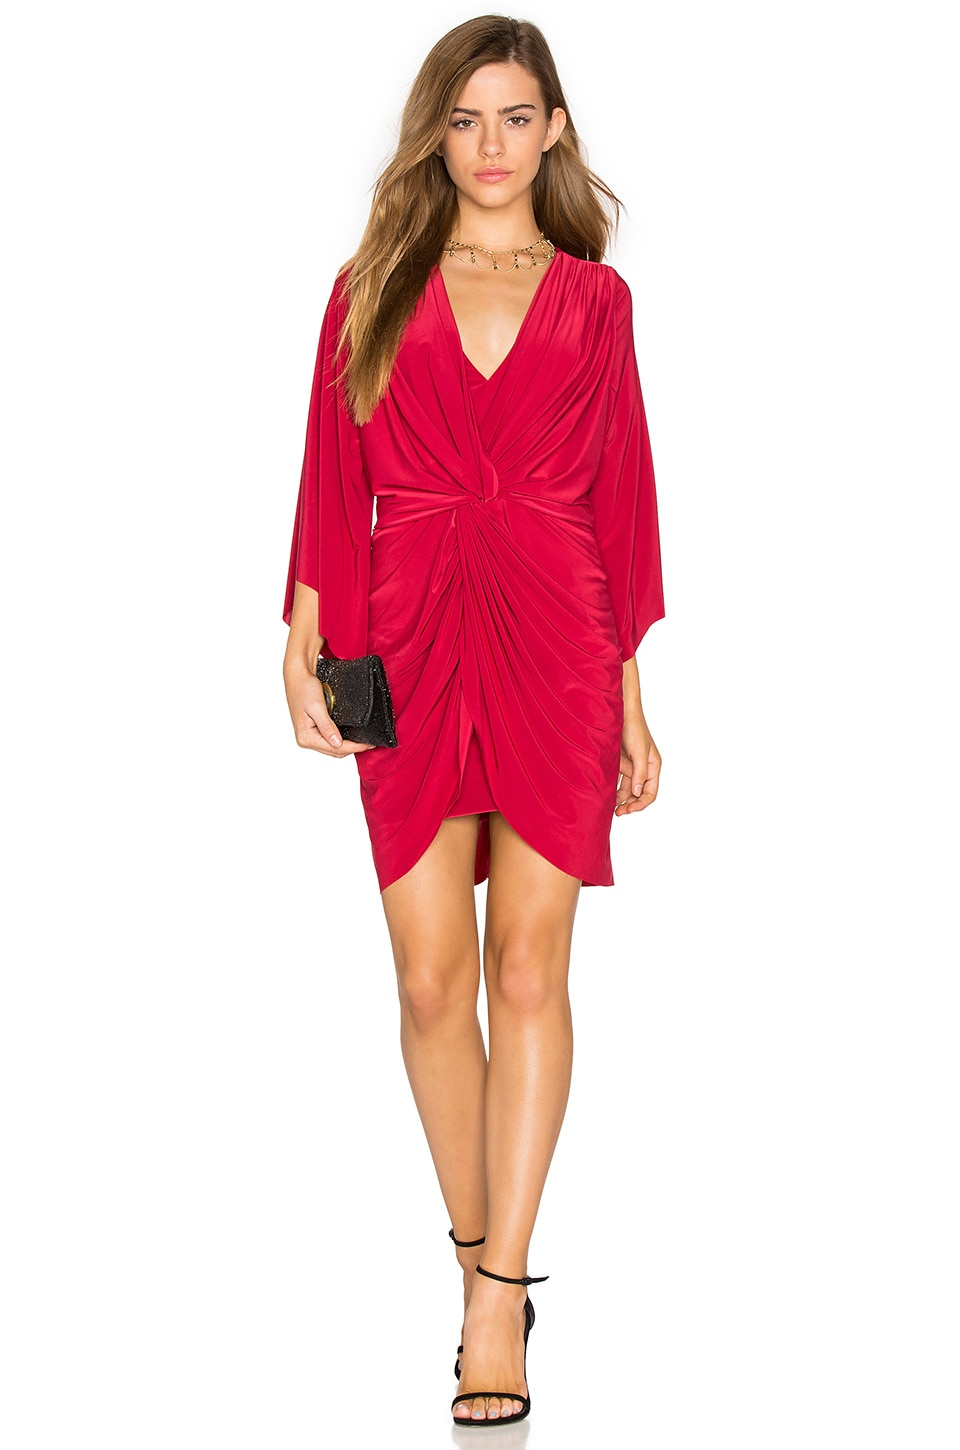 MISA Los Angeles Teget Dress in Red